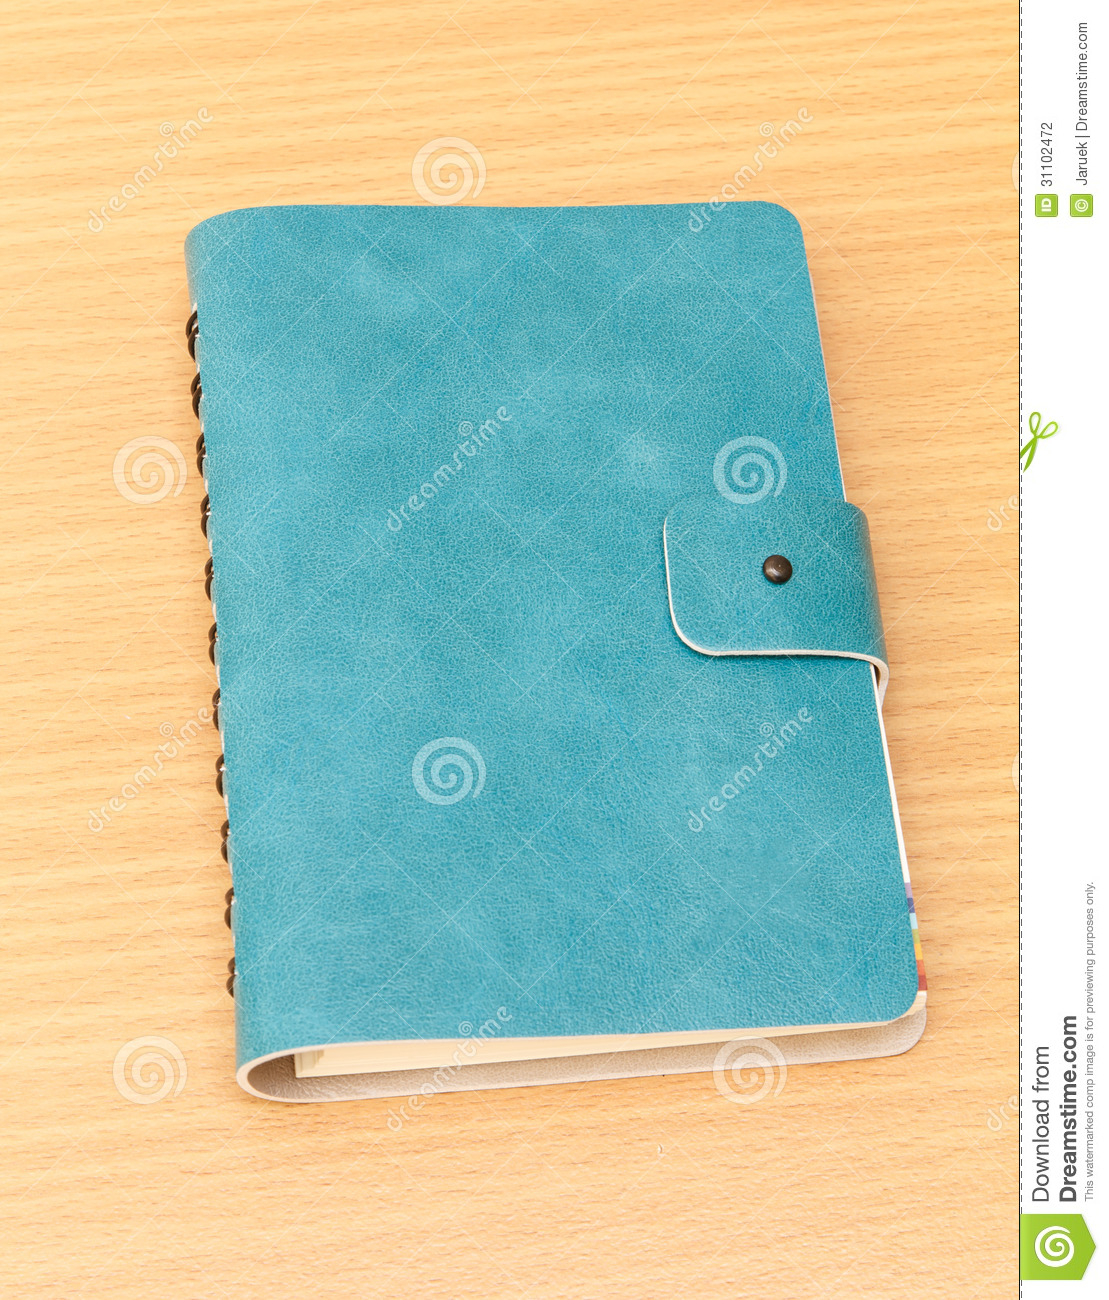 Notebook Cover Background : Leather cover of green notebook stock photography image